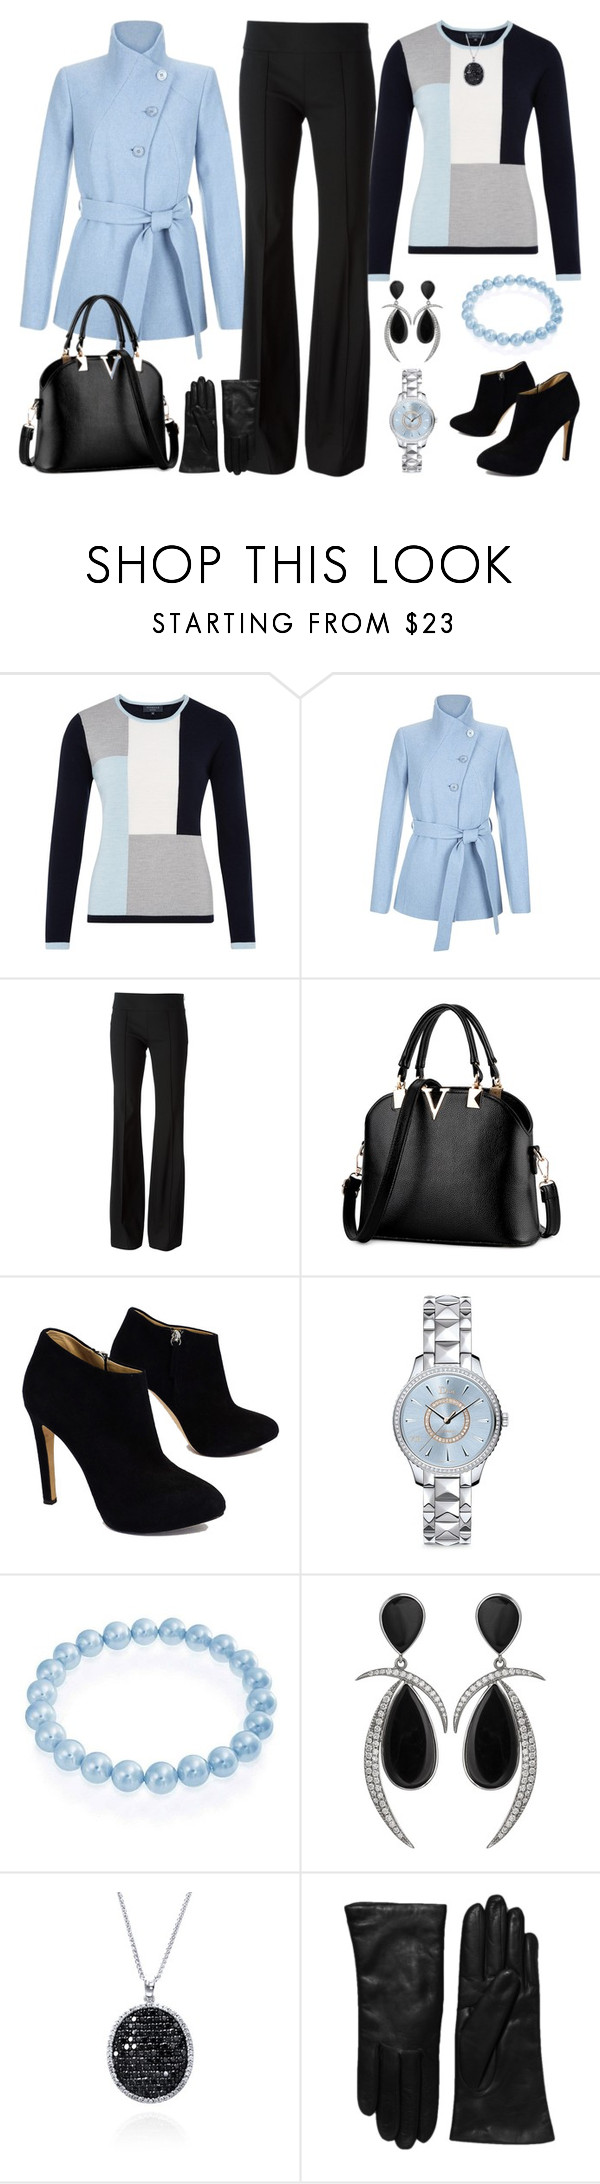 Untitled #2877 by emmafazekas on Polyvore featuring Viyella, Hobbs, Michael Kors, Giuseppe Zanotti, Bling Jewelry, Christian Dior, Jorge Adeler, Effy Jewelry and Saks Fifth Avenue Collection